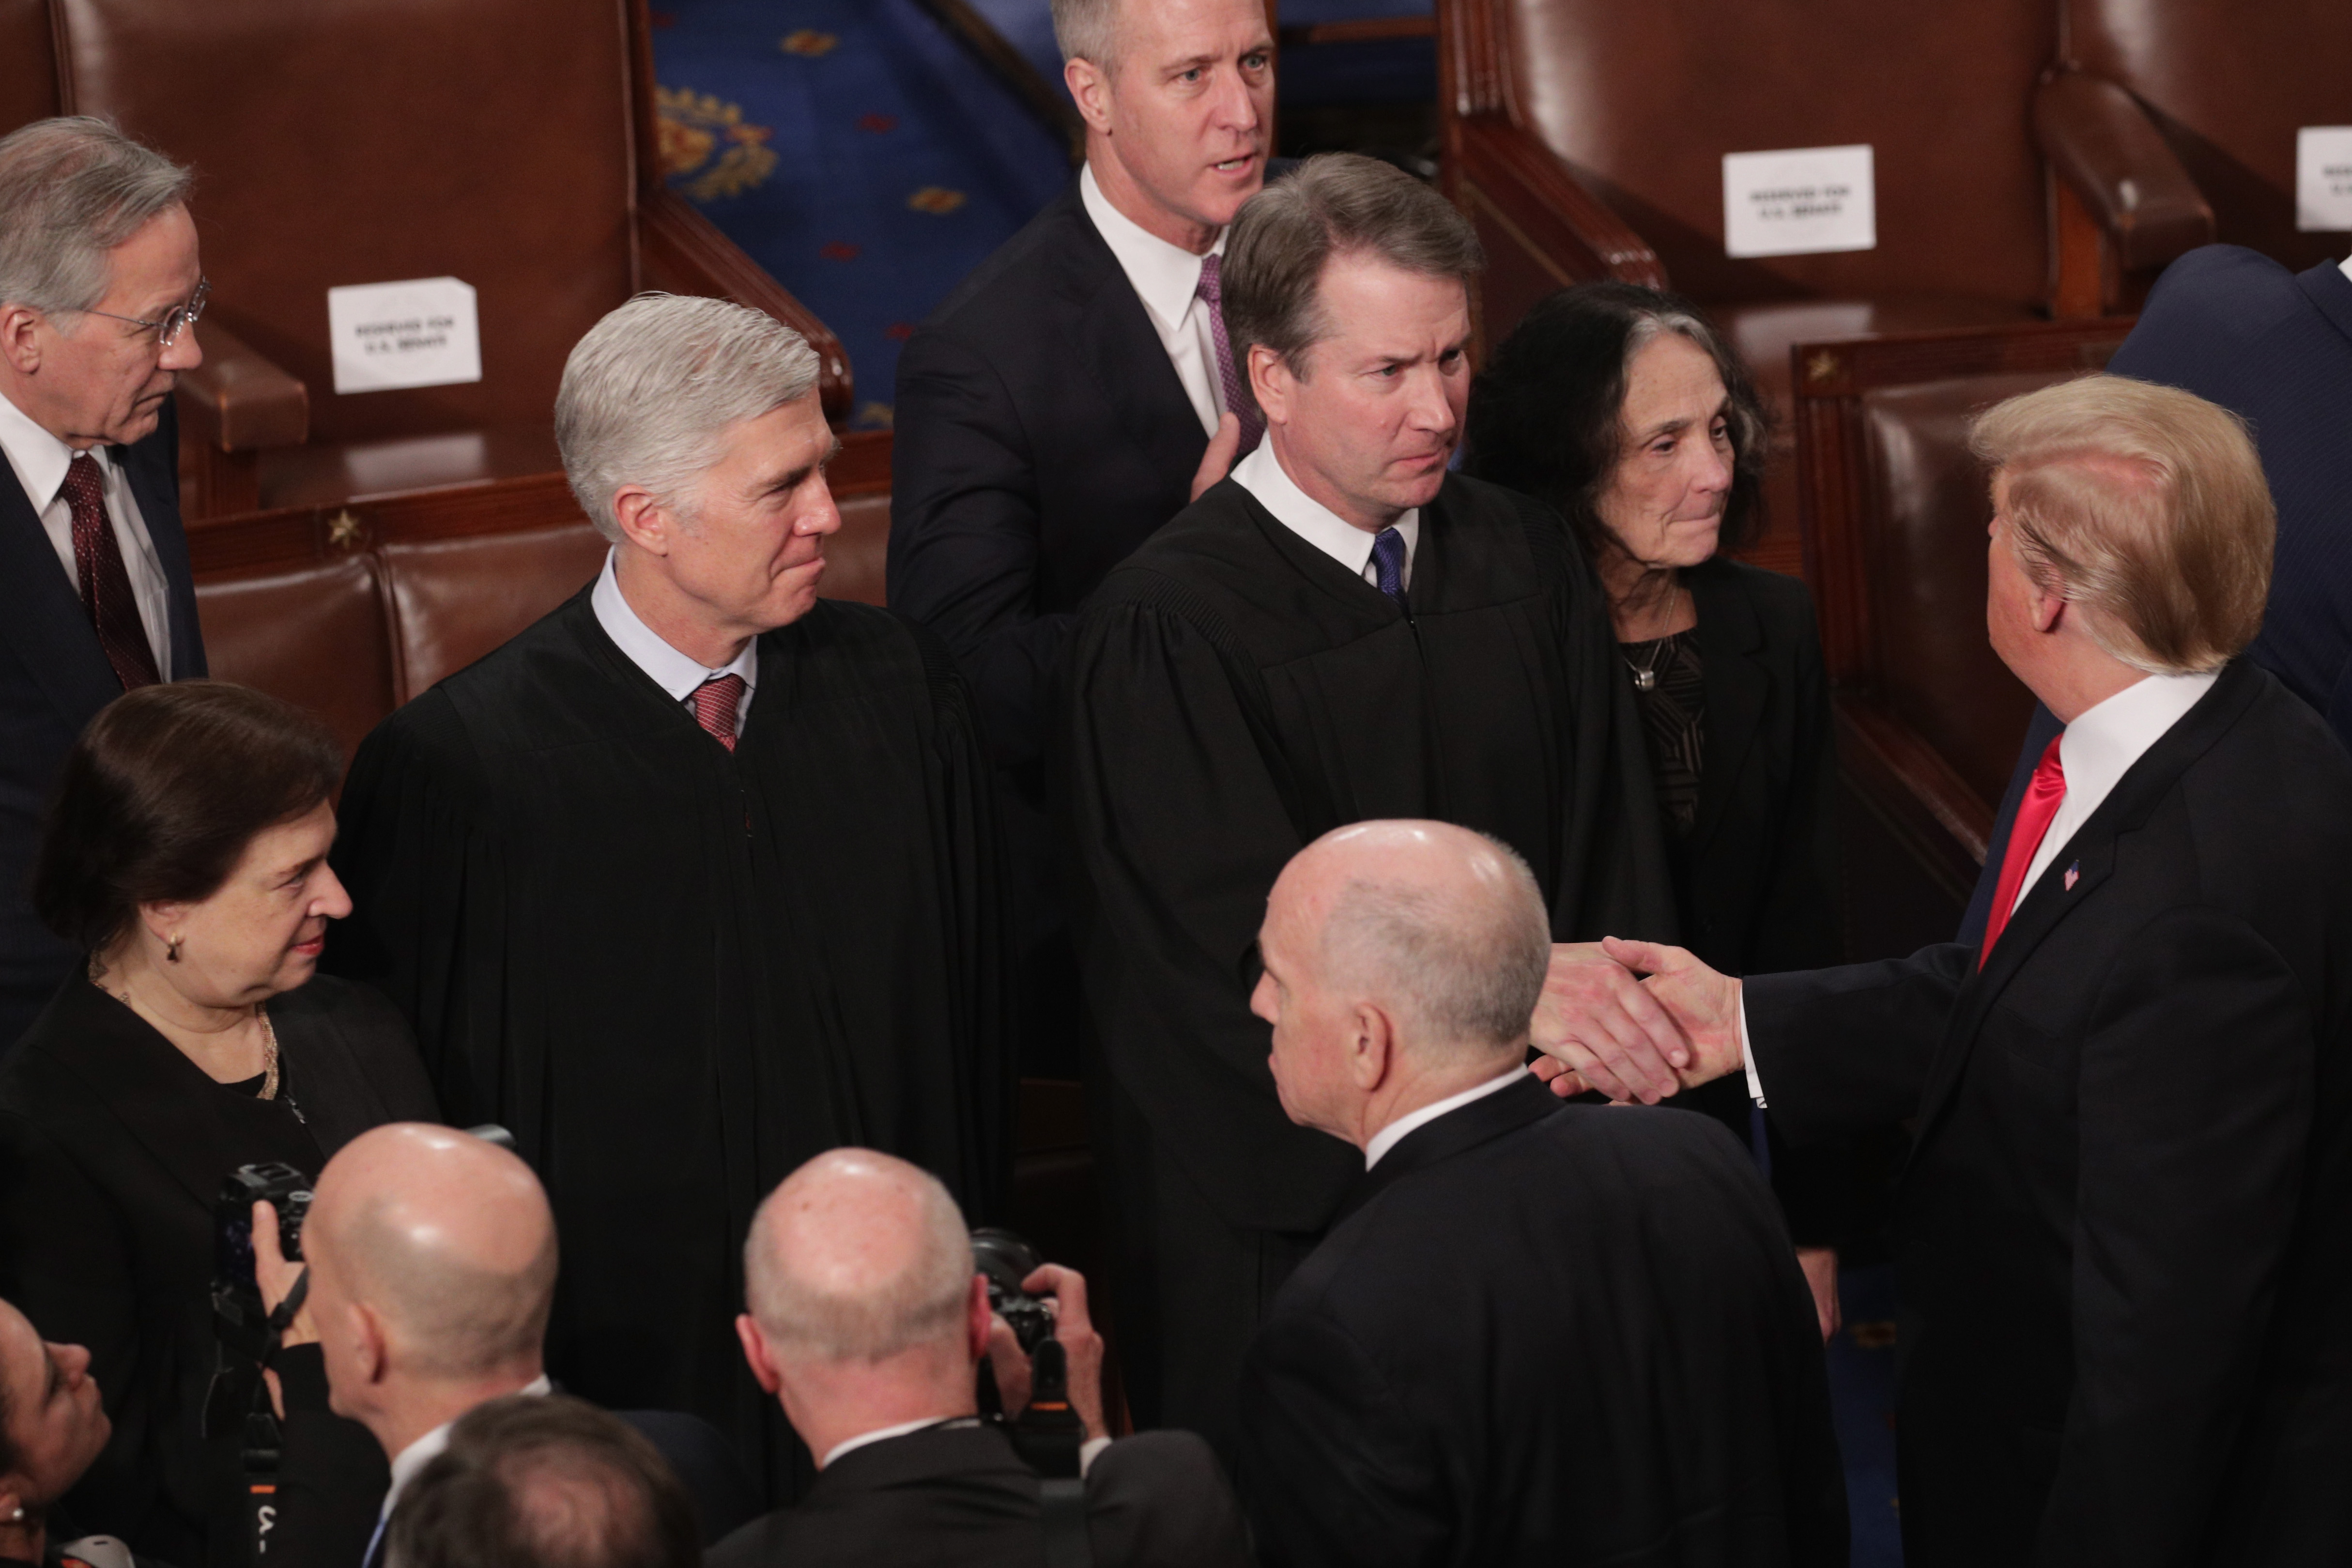 Supreme Court Justice Brett Kavanaugh shakes hands with President Donald Trump after the State of the Union address, as other justices look on, at the U.S. Capitol Building on February 5, 2019 in Washington, DC.